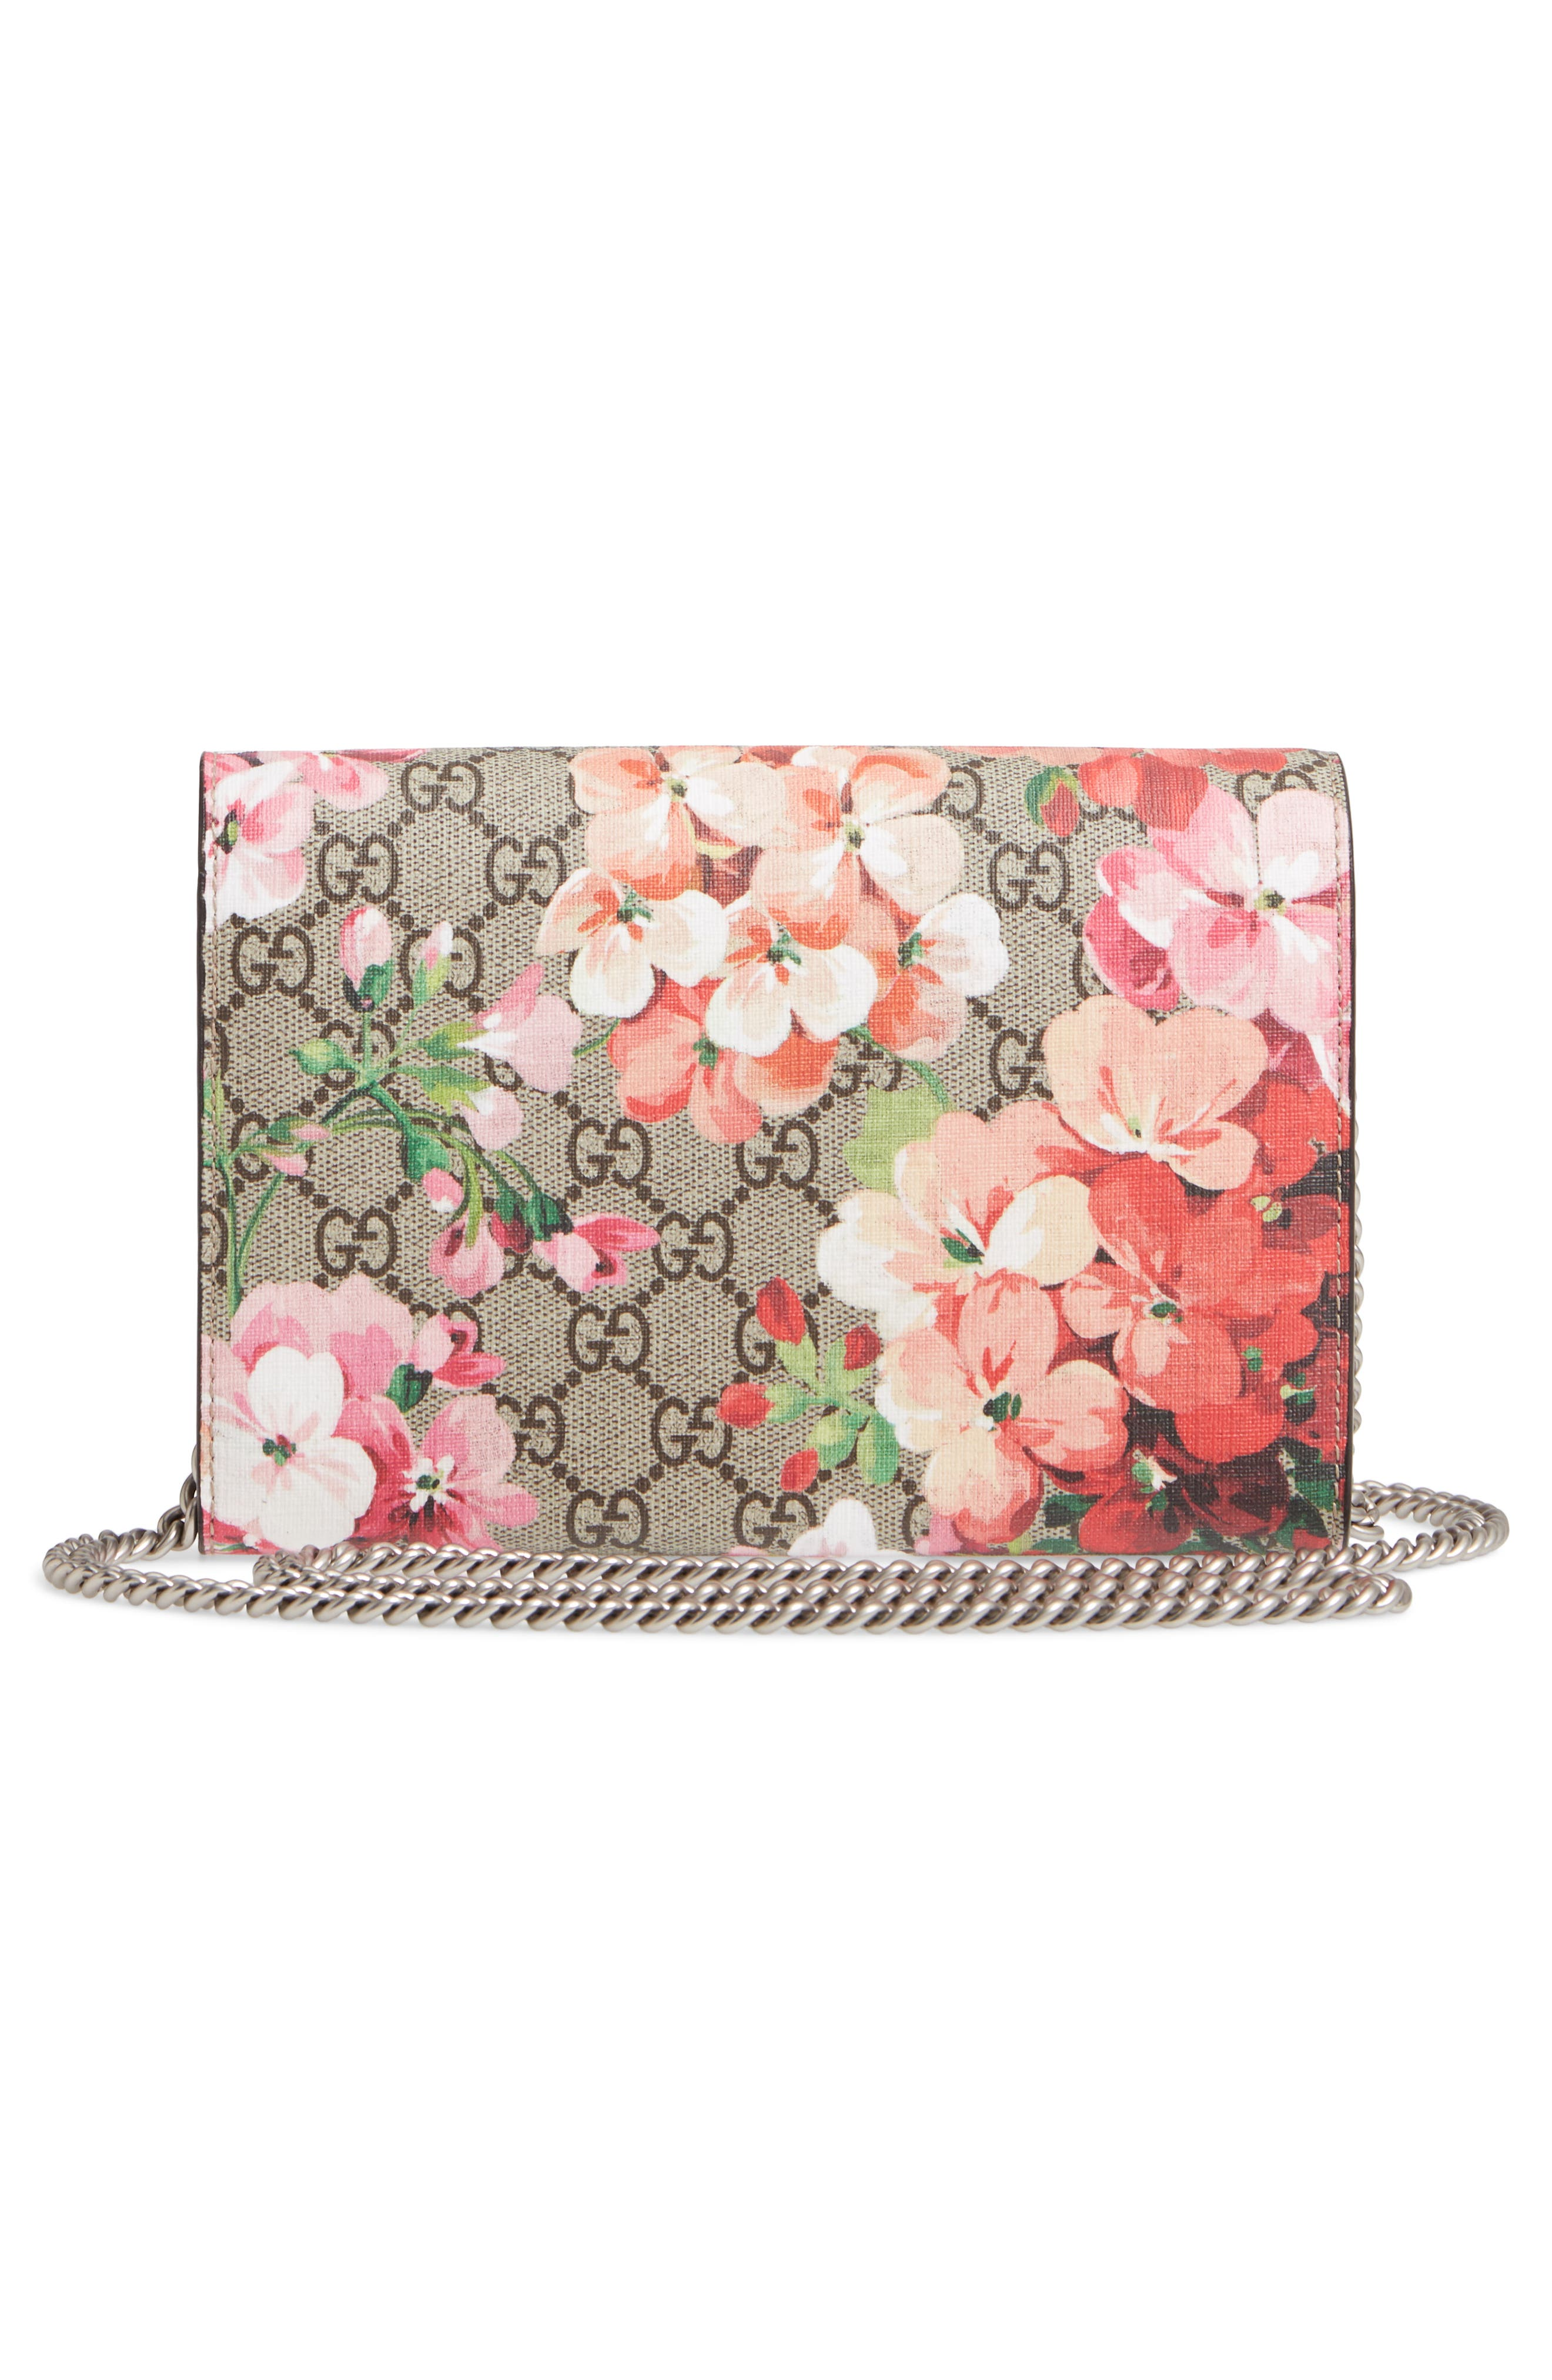 GUCCI, Blooms GG Supreme Canvas Wallet on a Chain, Alternate thumbnail 3, color, BEIGE EBONY/ DRY ROSE